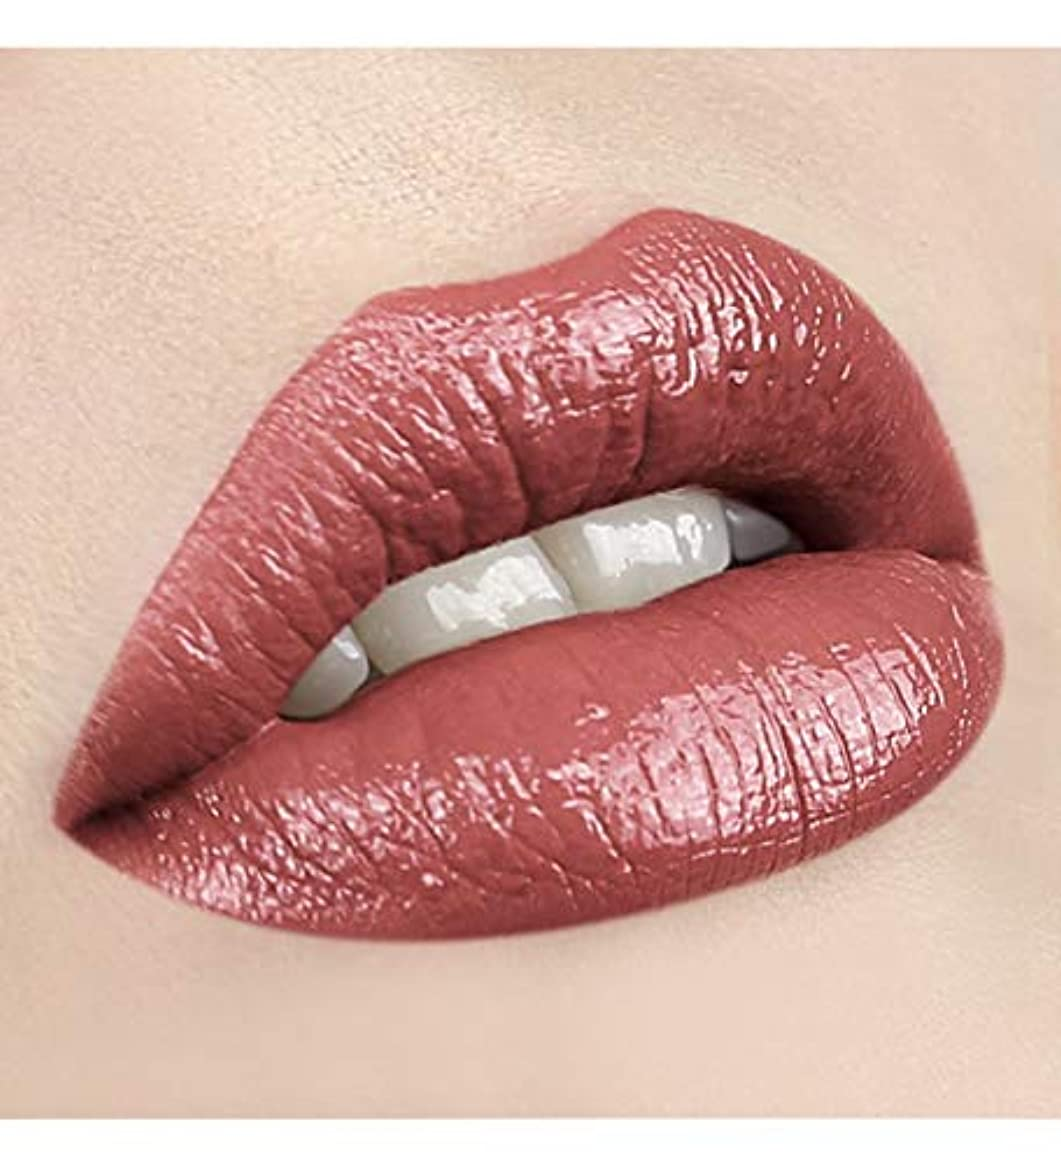 LUXVISAGE MOTHER-OF-PEARL GLOSSY LIPSTICK   LANOLIN, NATURAL WAXES AND OILS   4g. (68)